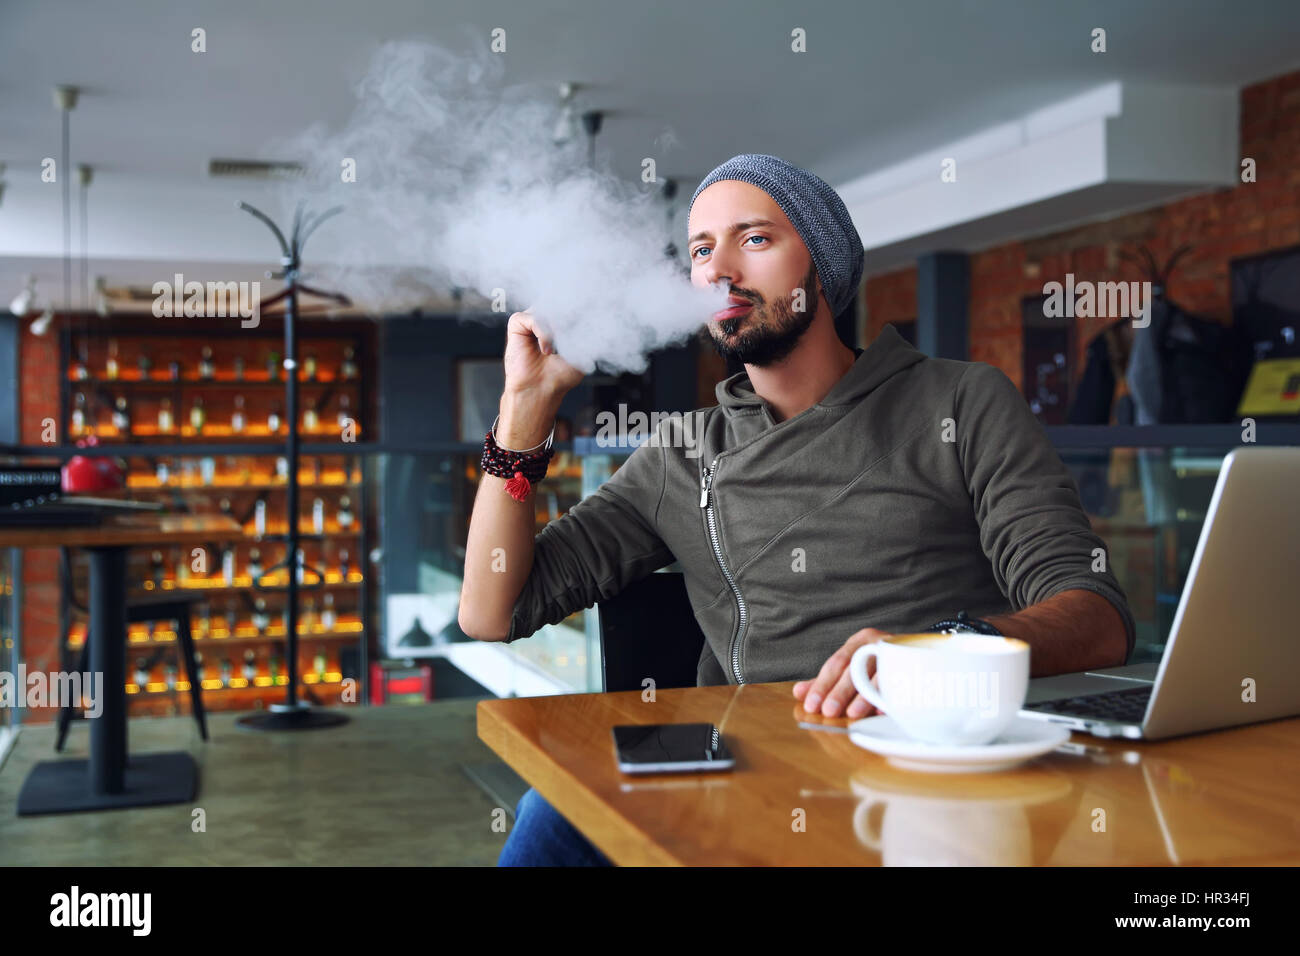 Young handsome hipster man with beard sitting in cafe with a cup of coffee, vaping and releases a cloud of vapor. Stock Photo